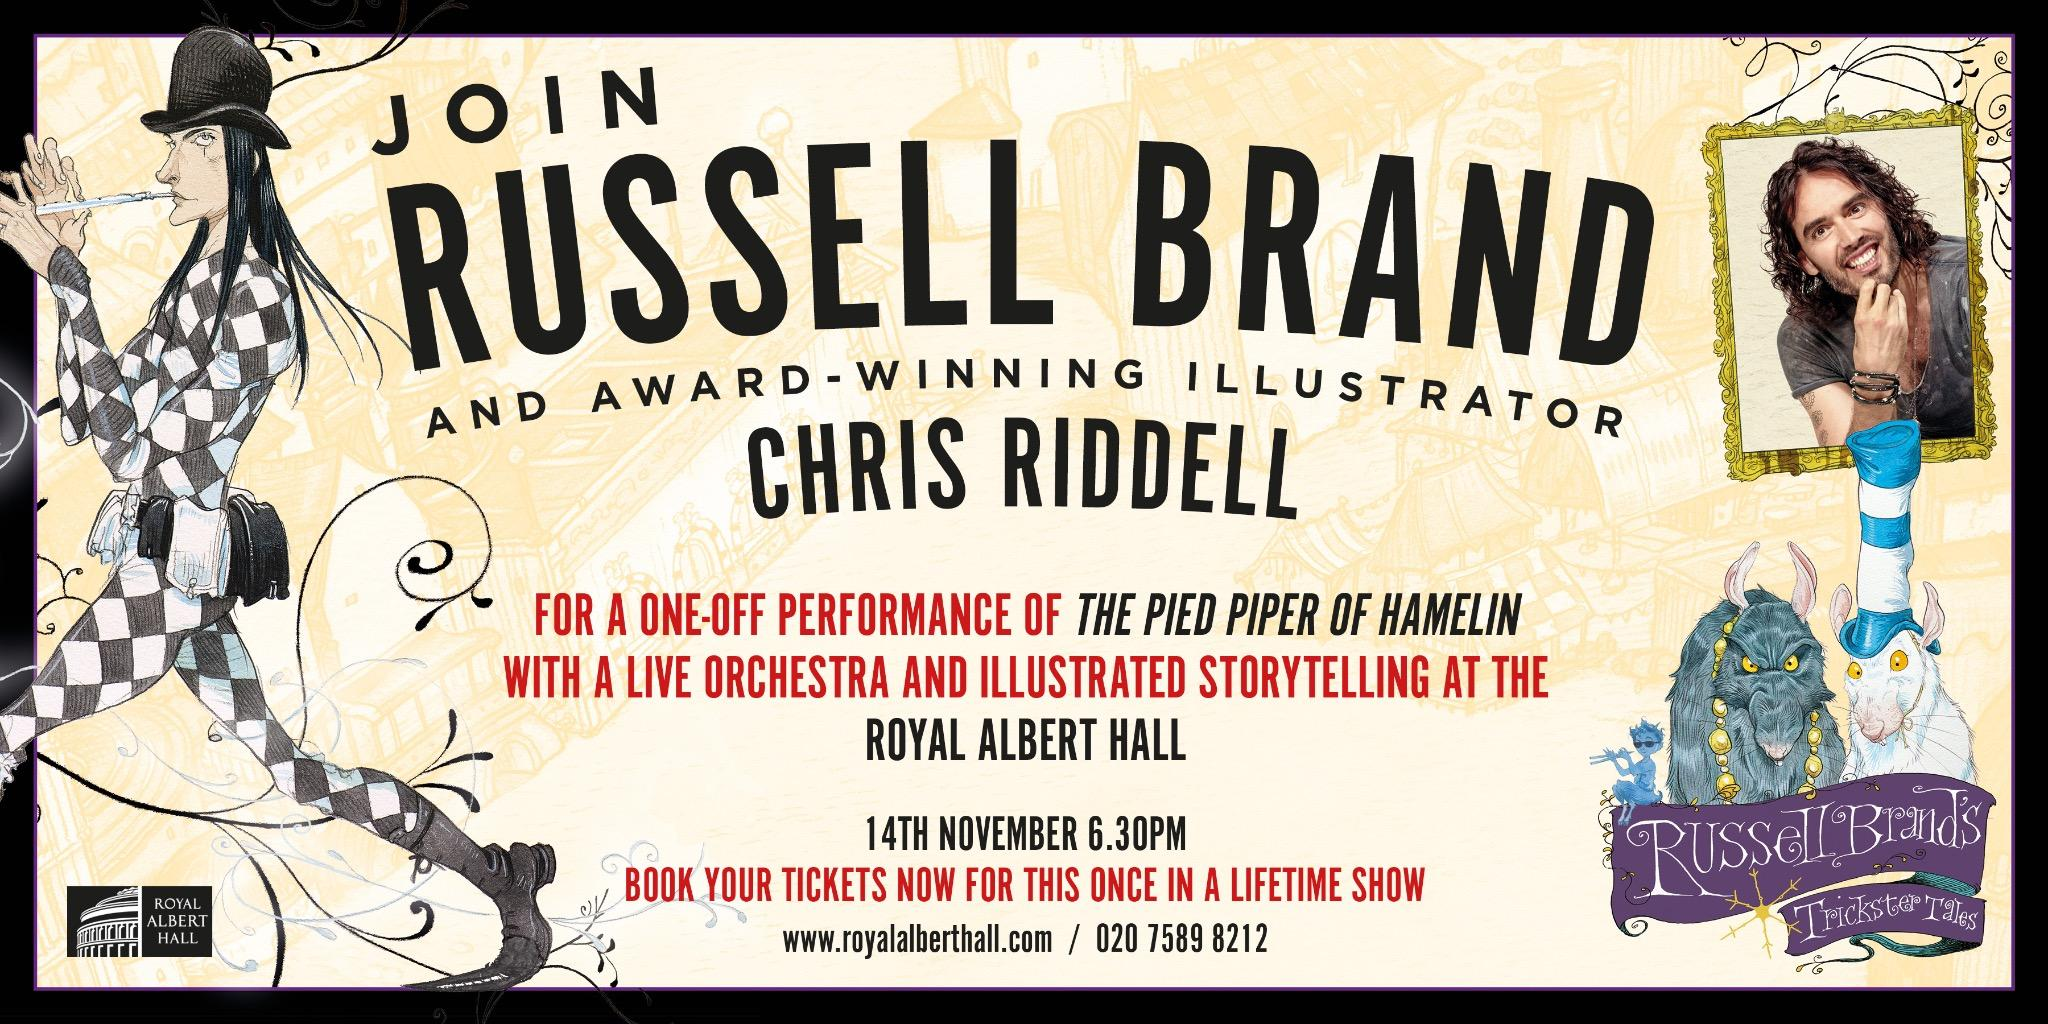 Love the sound of this unique charity event at the Albert Hall with Russell Brand & Chris Riddell. Do RT http://t.co/P20sgURge0